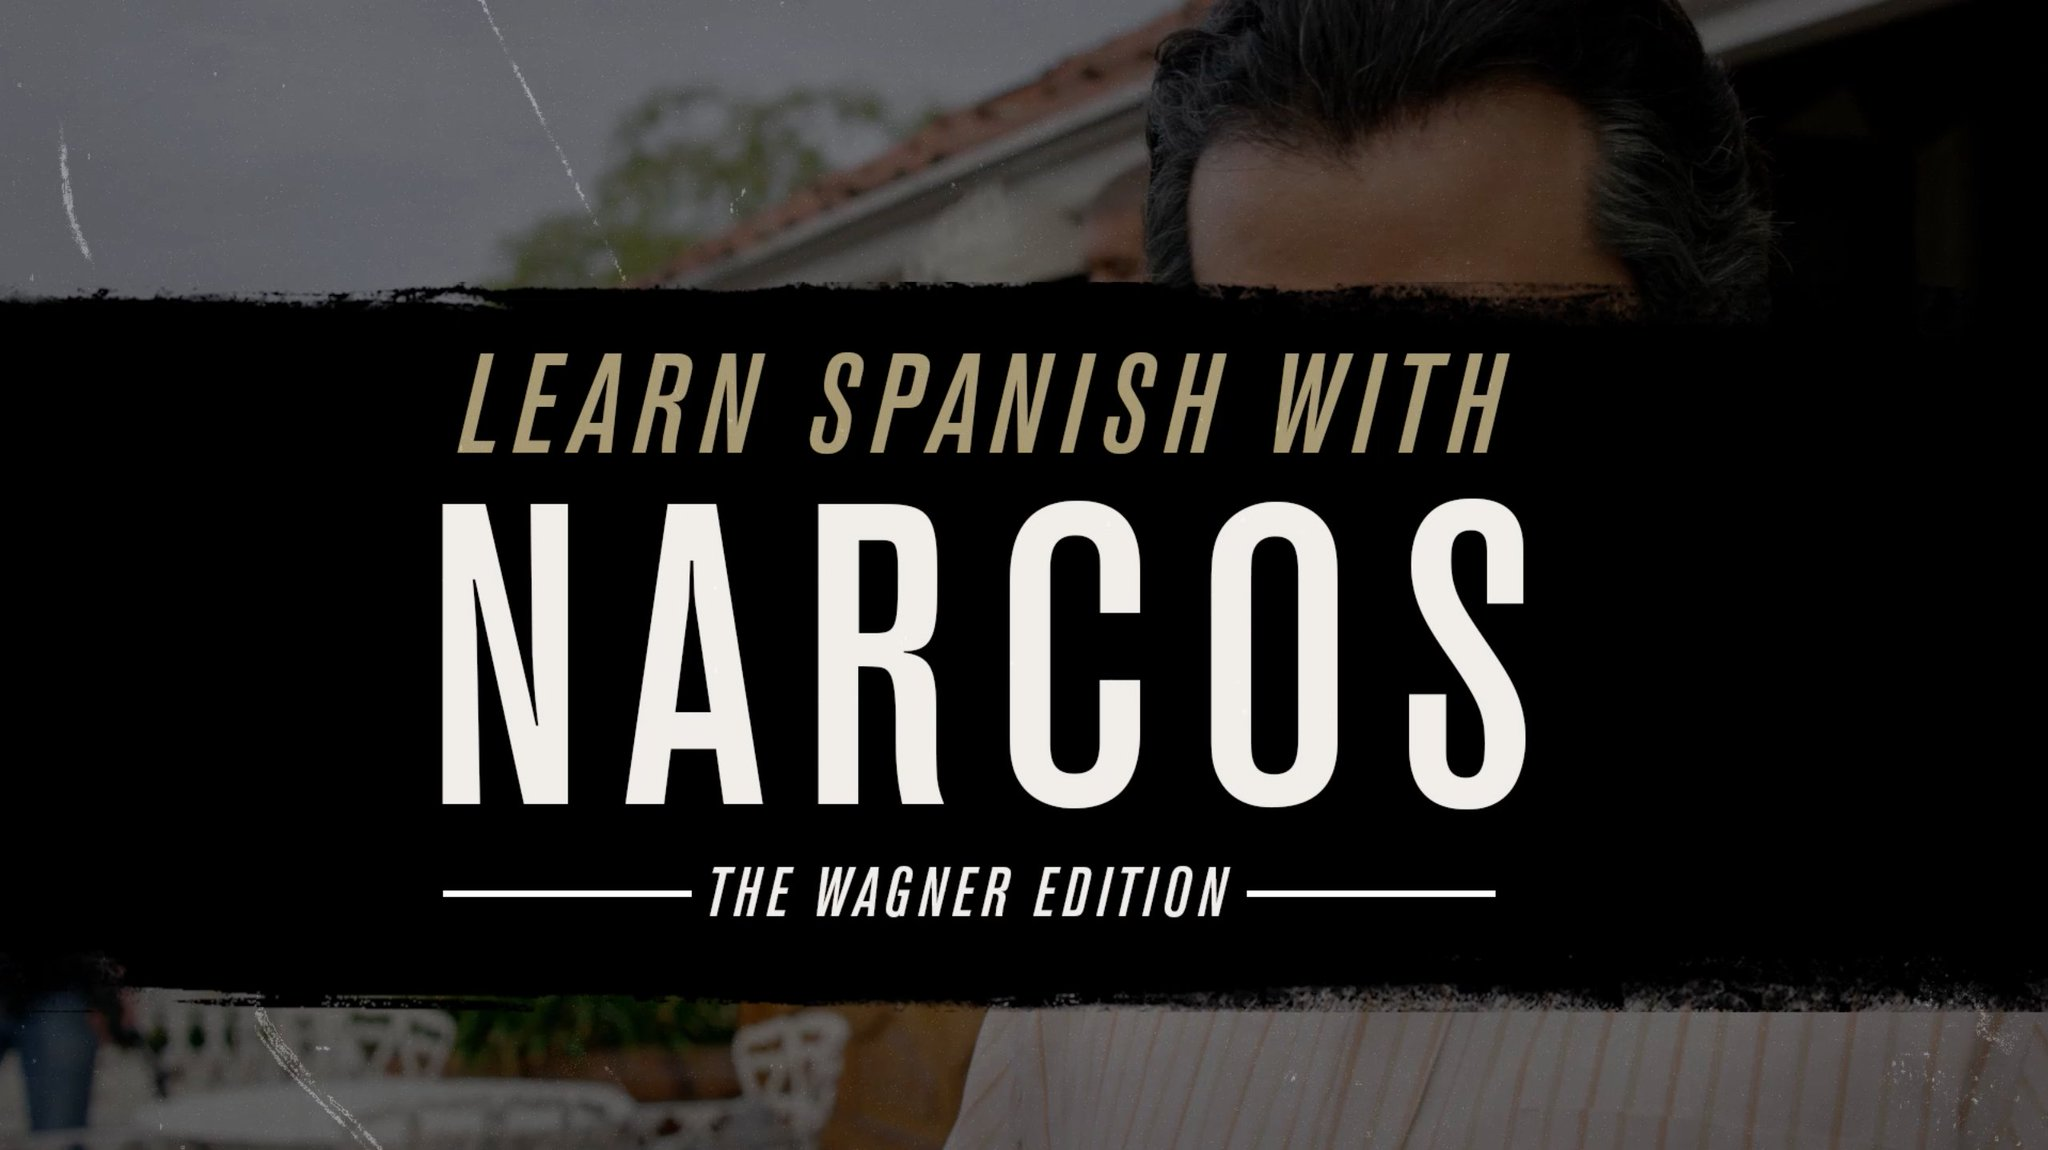 Sapos are bad for business. #NarcosSpanishLessons #Narcos https://t.co/hSogD3wW4P